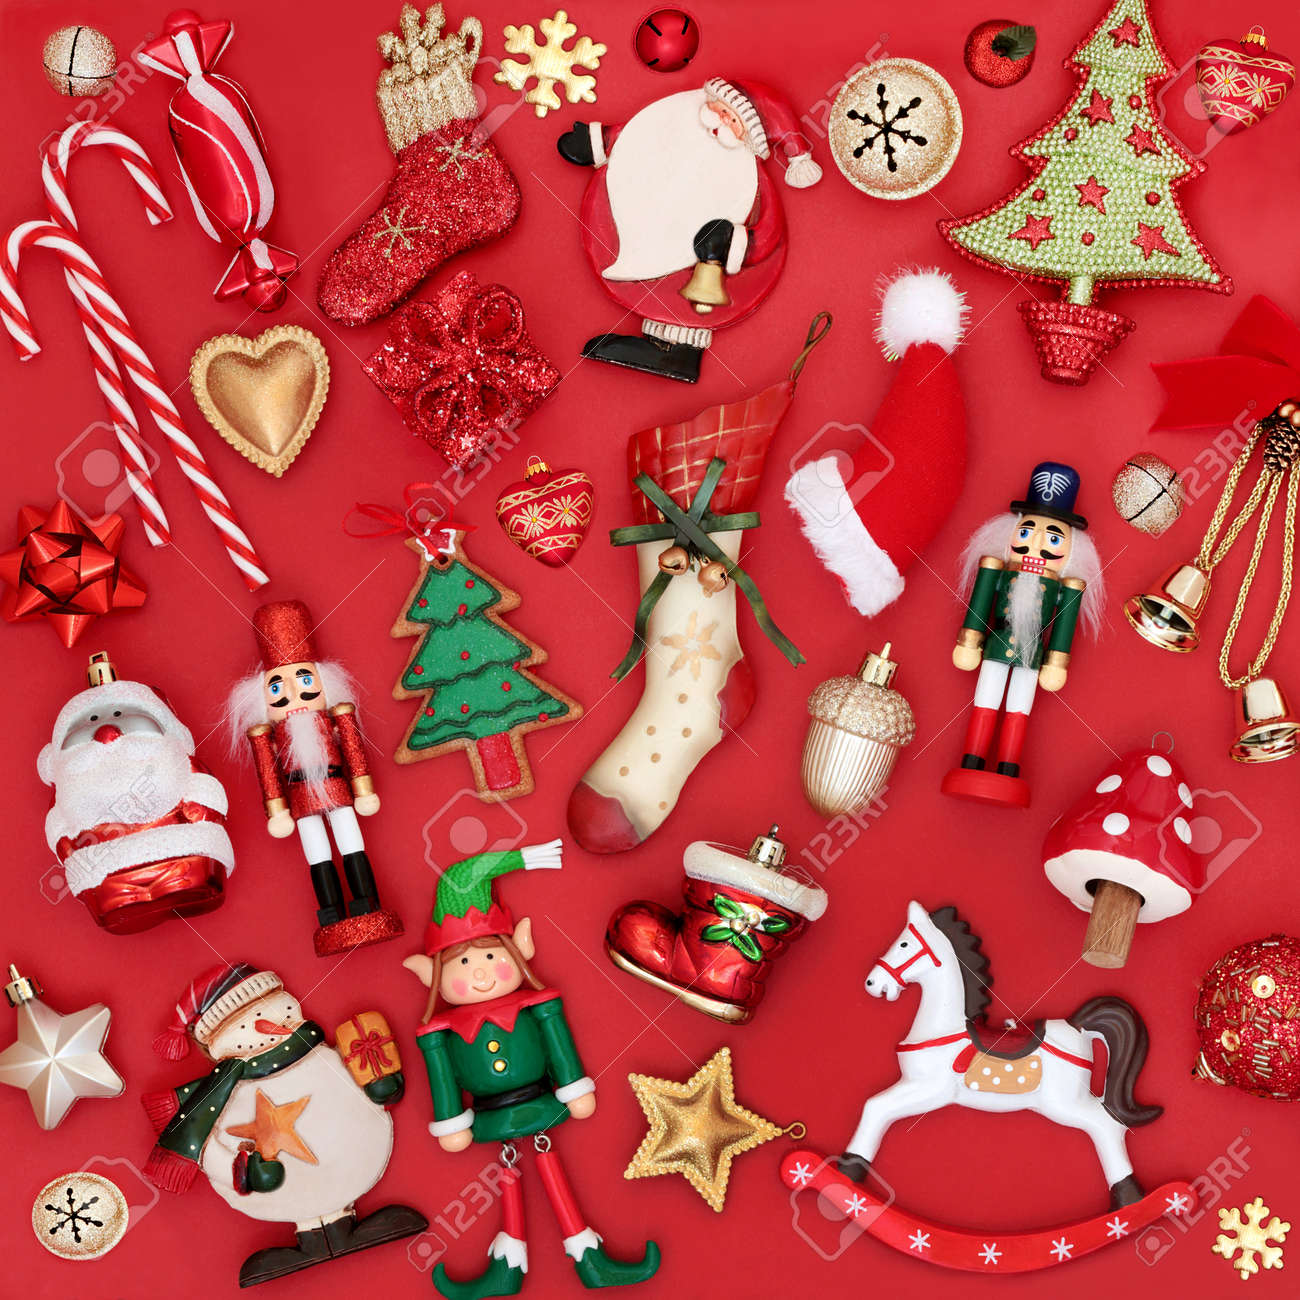 Christmas Decorations And Tree Ornaments On Red Background Traditional Stock Photo Picture And Royalty Free Image Image 133509316